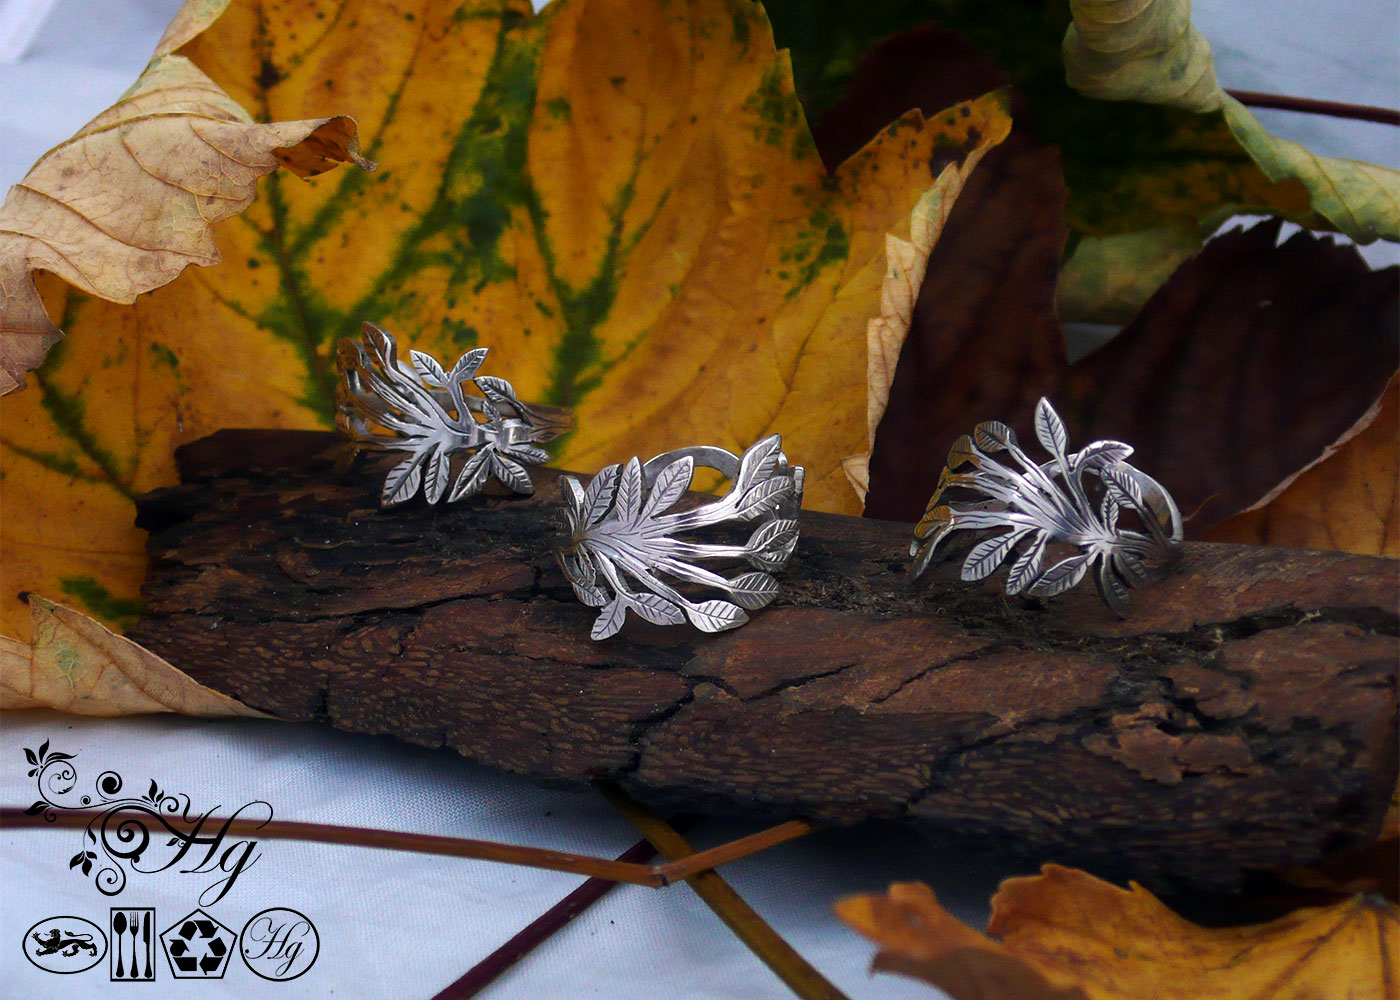 Green leaves handcrafted and recycled ring